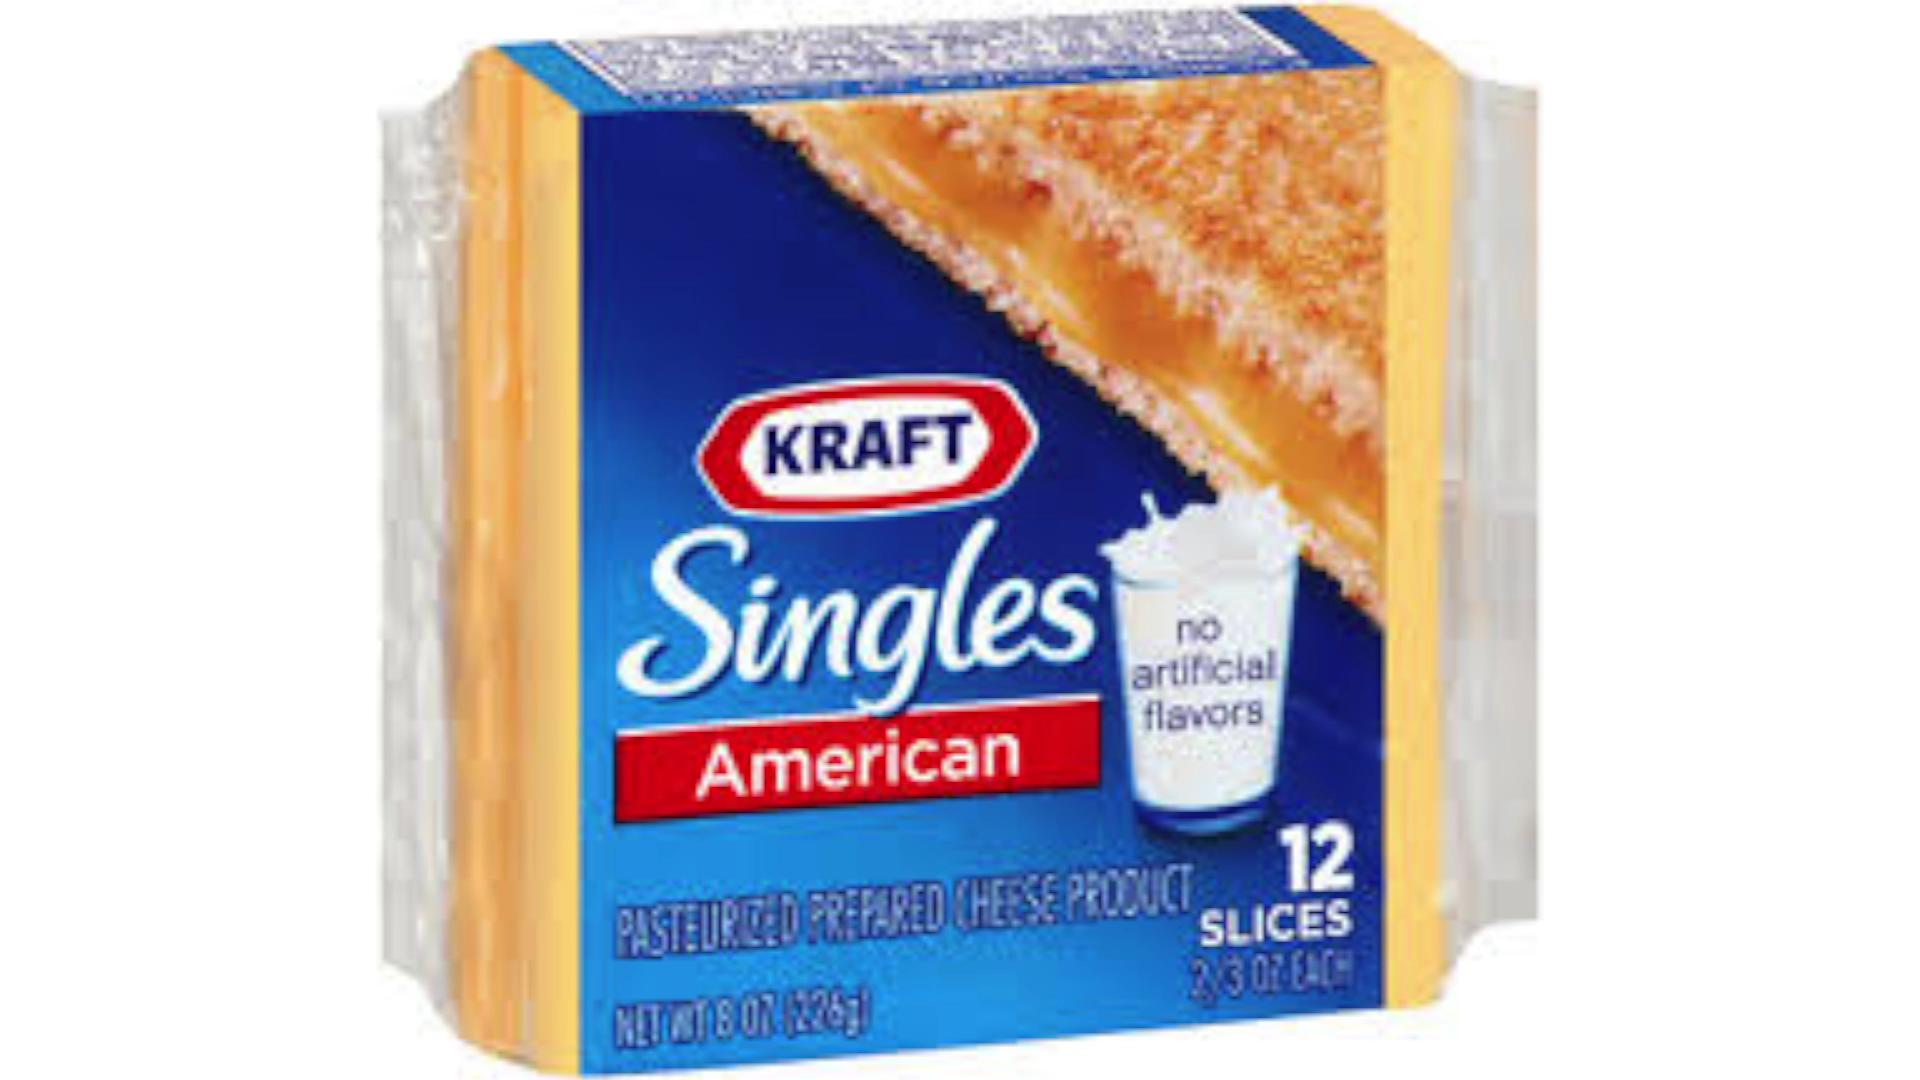 Wire Wrapped Sungles | Kraft Issues Recall Of Cheese Slices Citing Choking Hazard